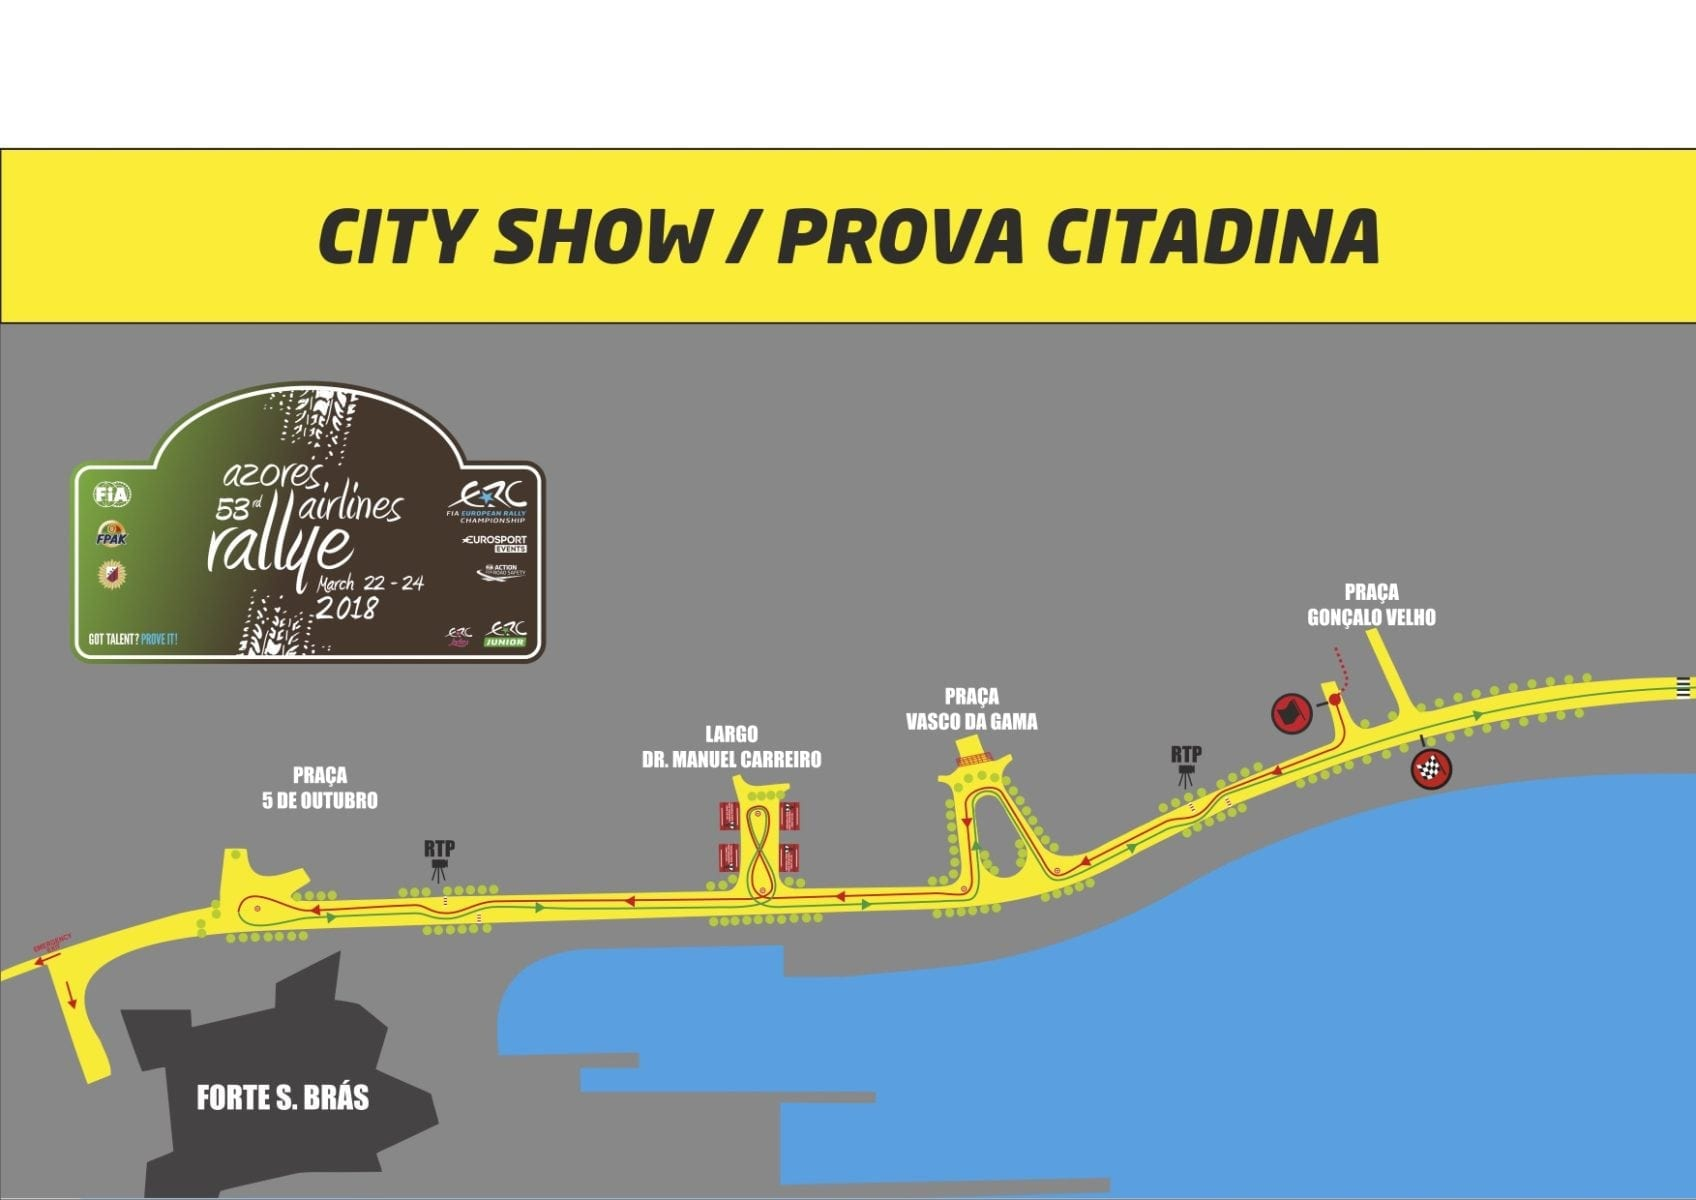 Mapa-City-Show-Troco-Azores-Airlines-Rallye